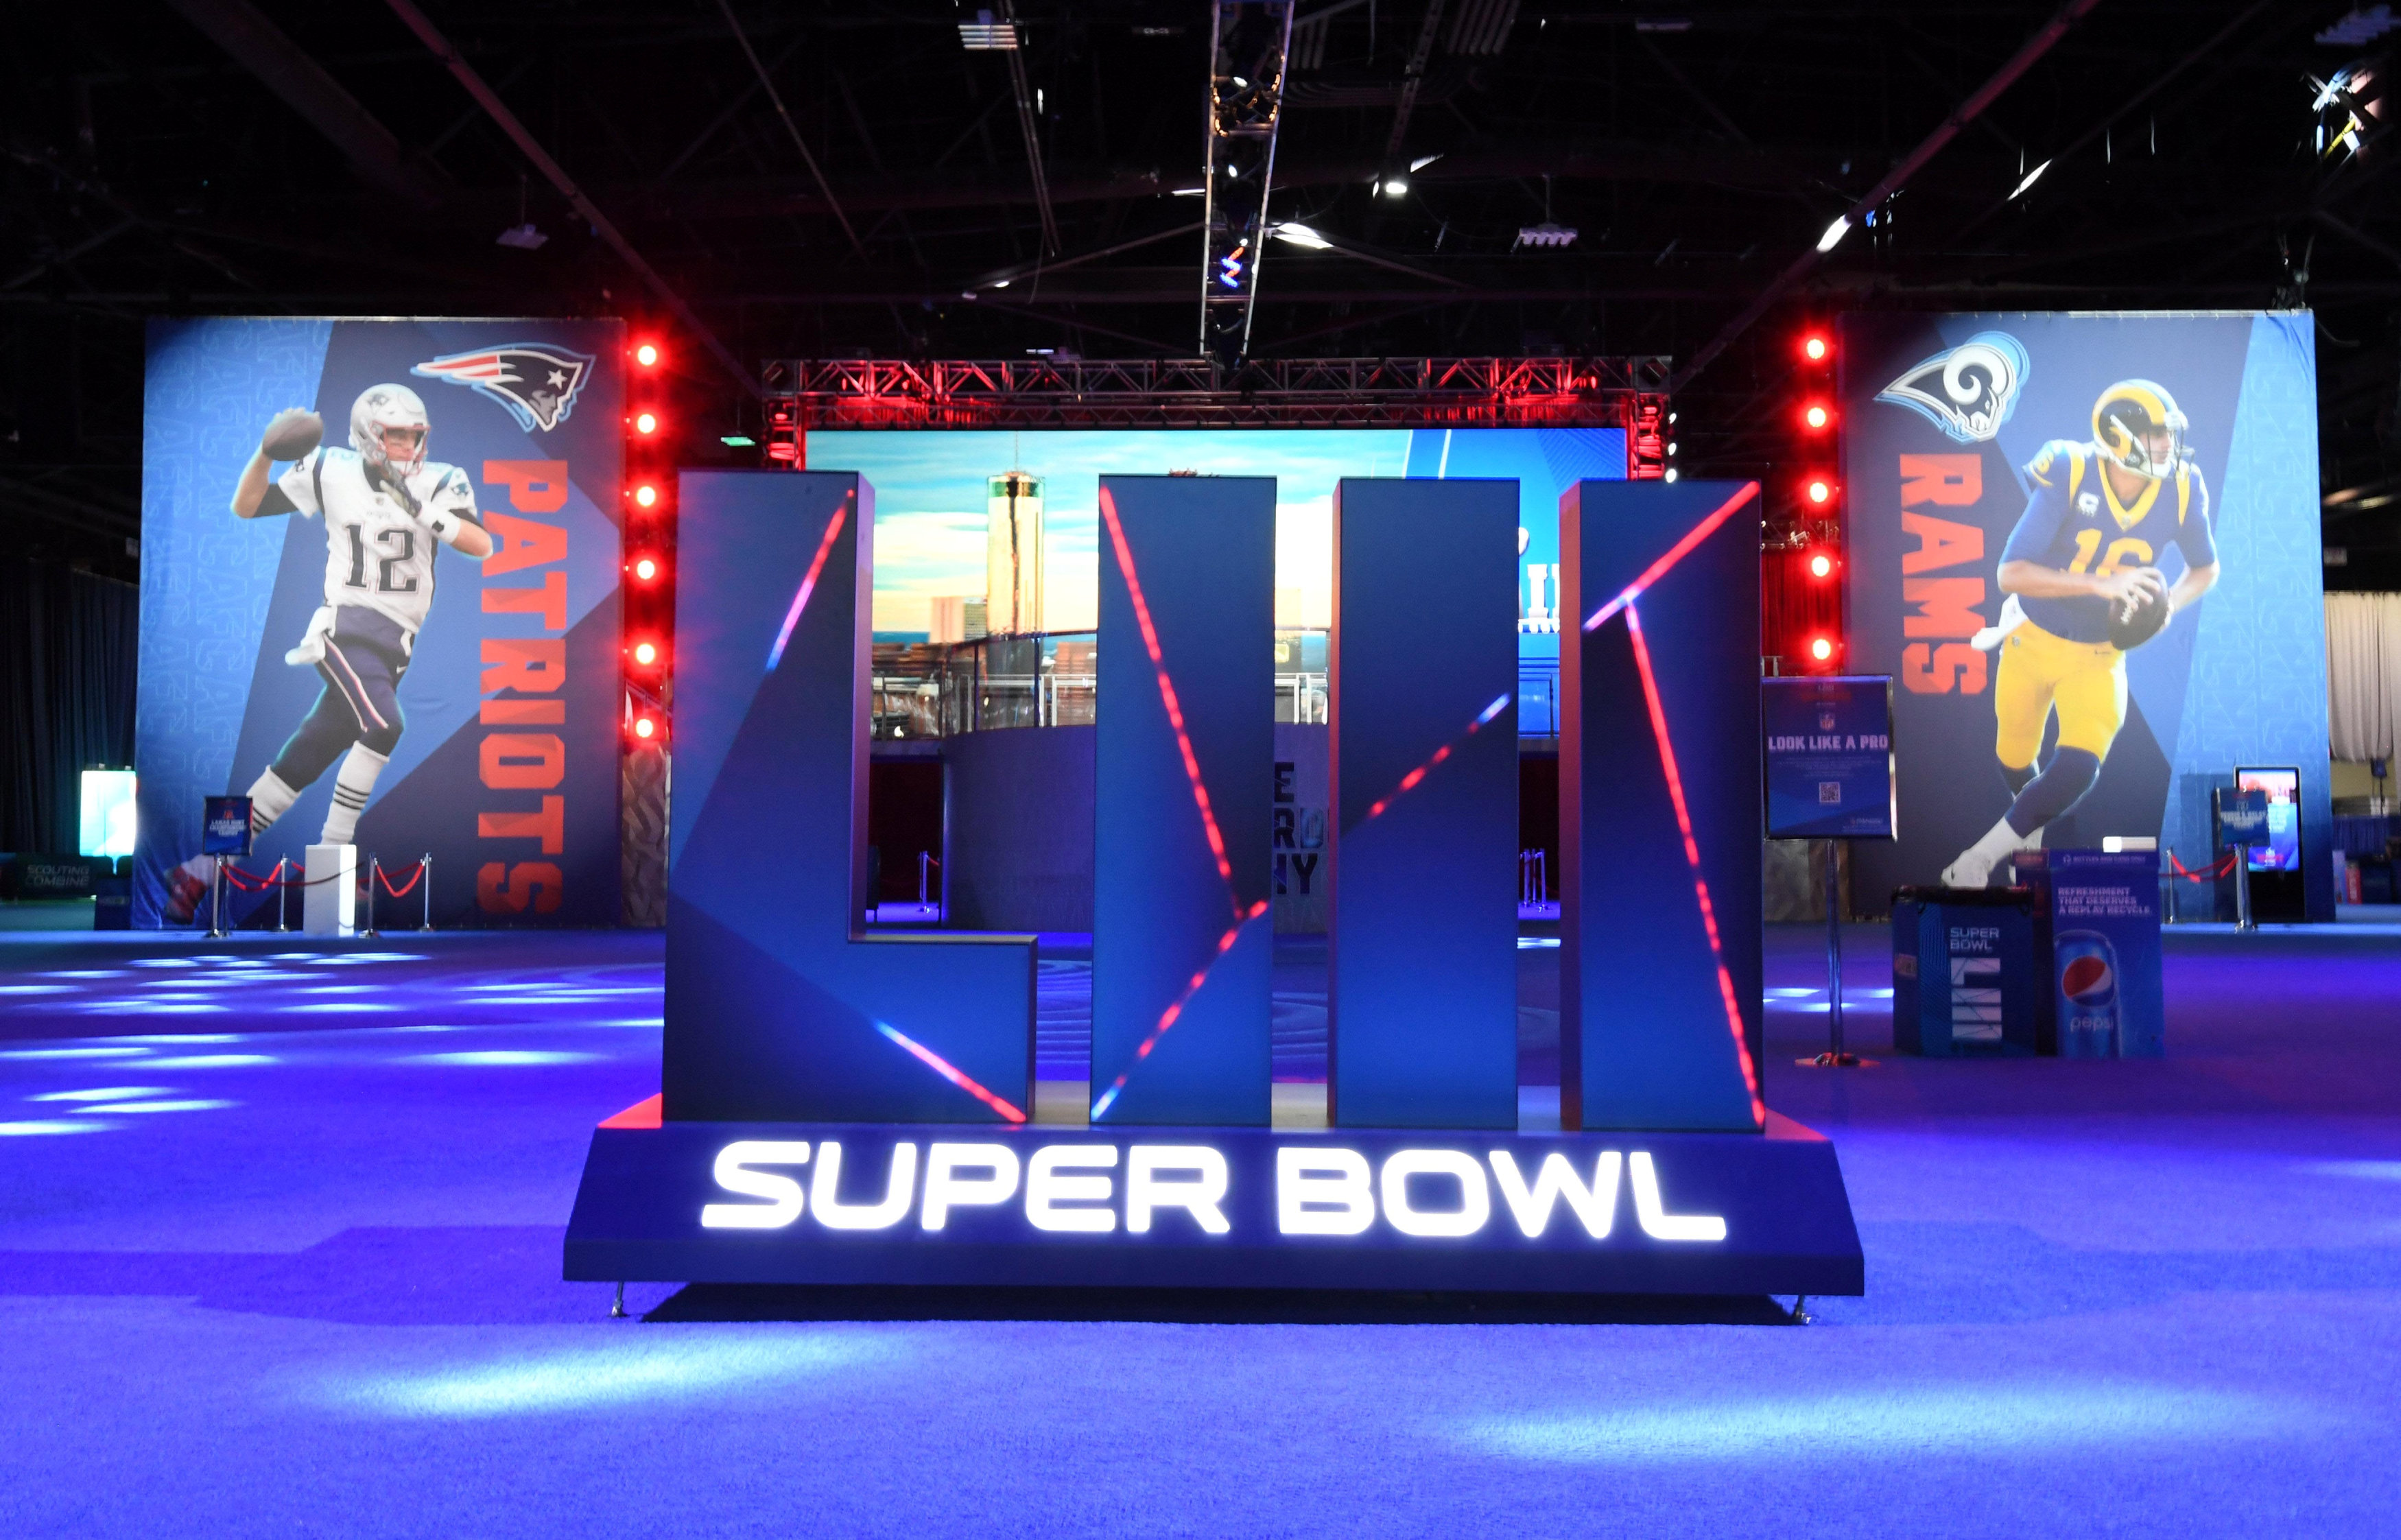 Super Bowl square pools: The best and worst numbers to own